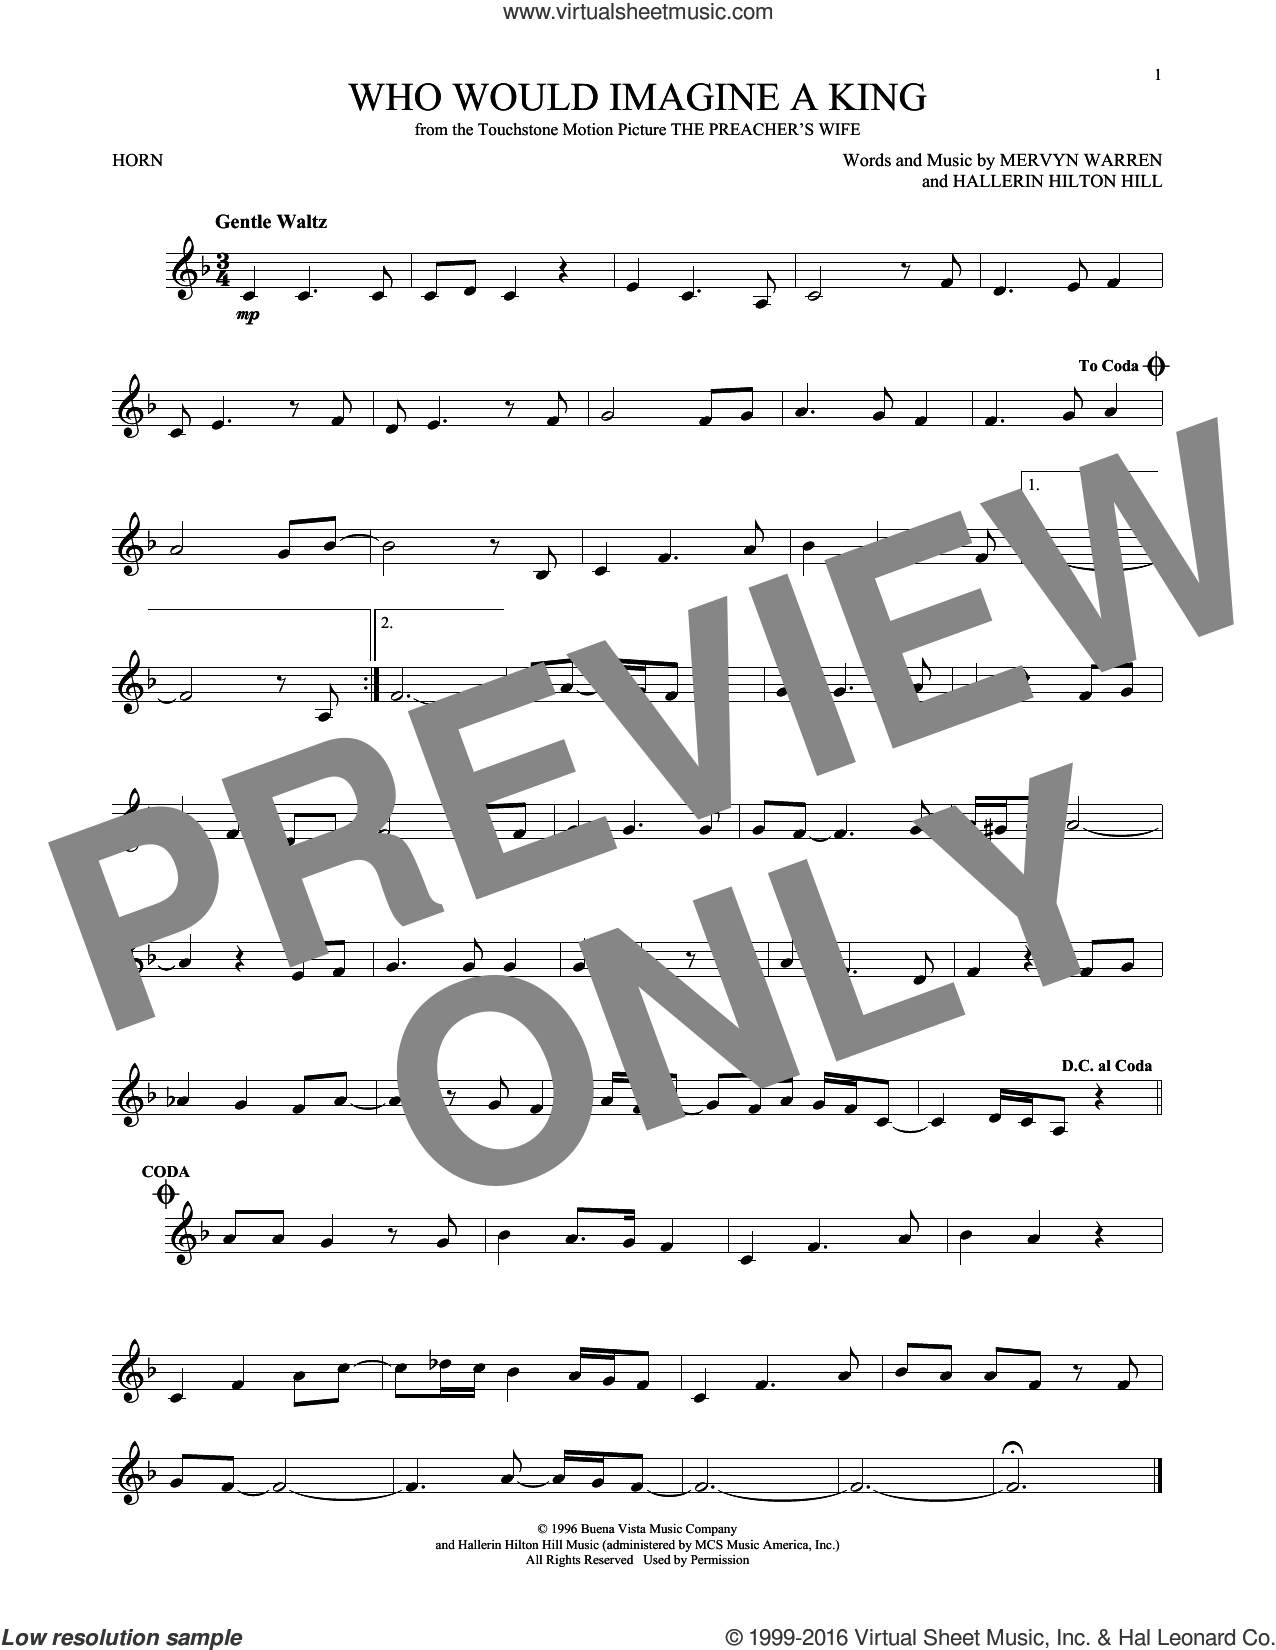 Who Would Imagine A King sheet music for horn solo by Whitney Houston, Hallerin Hilton Hill and Mervyn Warren, intermediate skill level